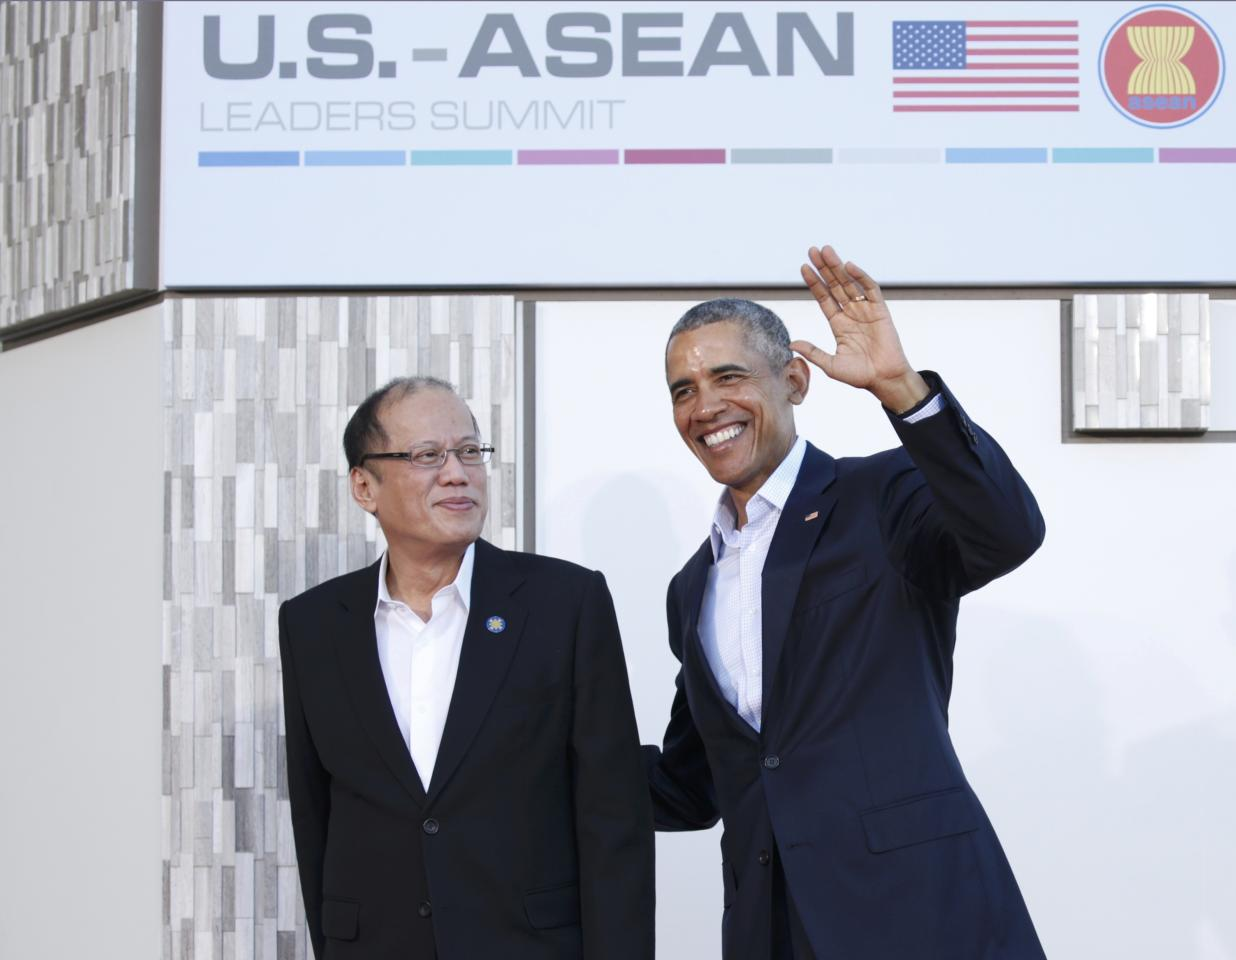 U.S. President Barack Obama welcomes Philippine President Benigno Aquino upon his arrival at Sunnylands for a 10-nation Association of Southeast Asian Nations (ASEAN) summit in Rancho Mirage, California February 15, 2016. Obama is expected to press leaders from Southeast Asia to boost trade and back a common stance on the South China Sea.    REUTERS/Kevin Lamarque